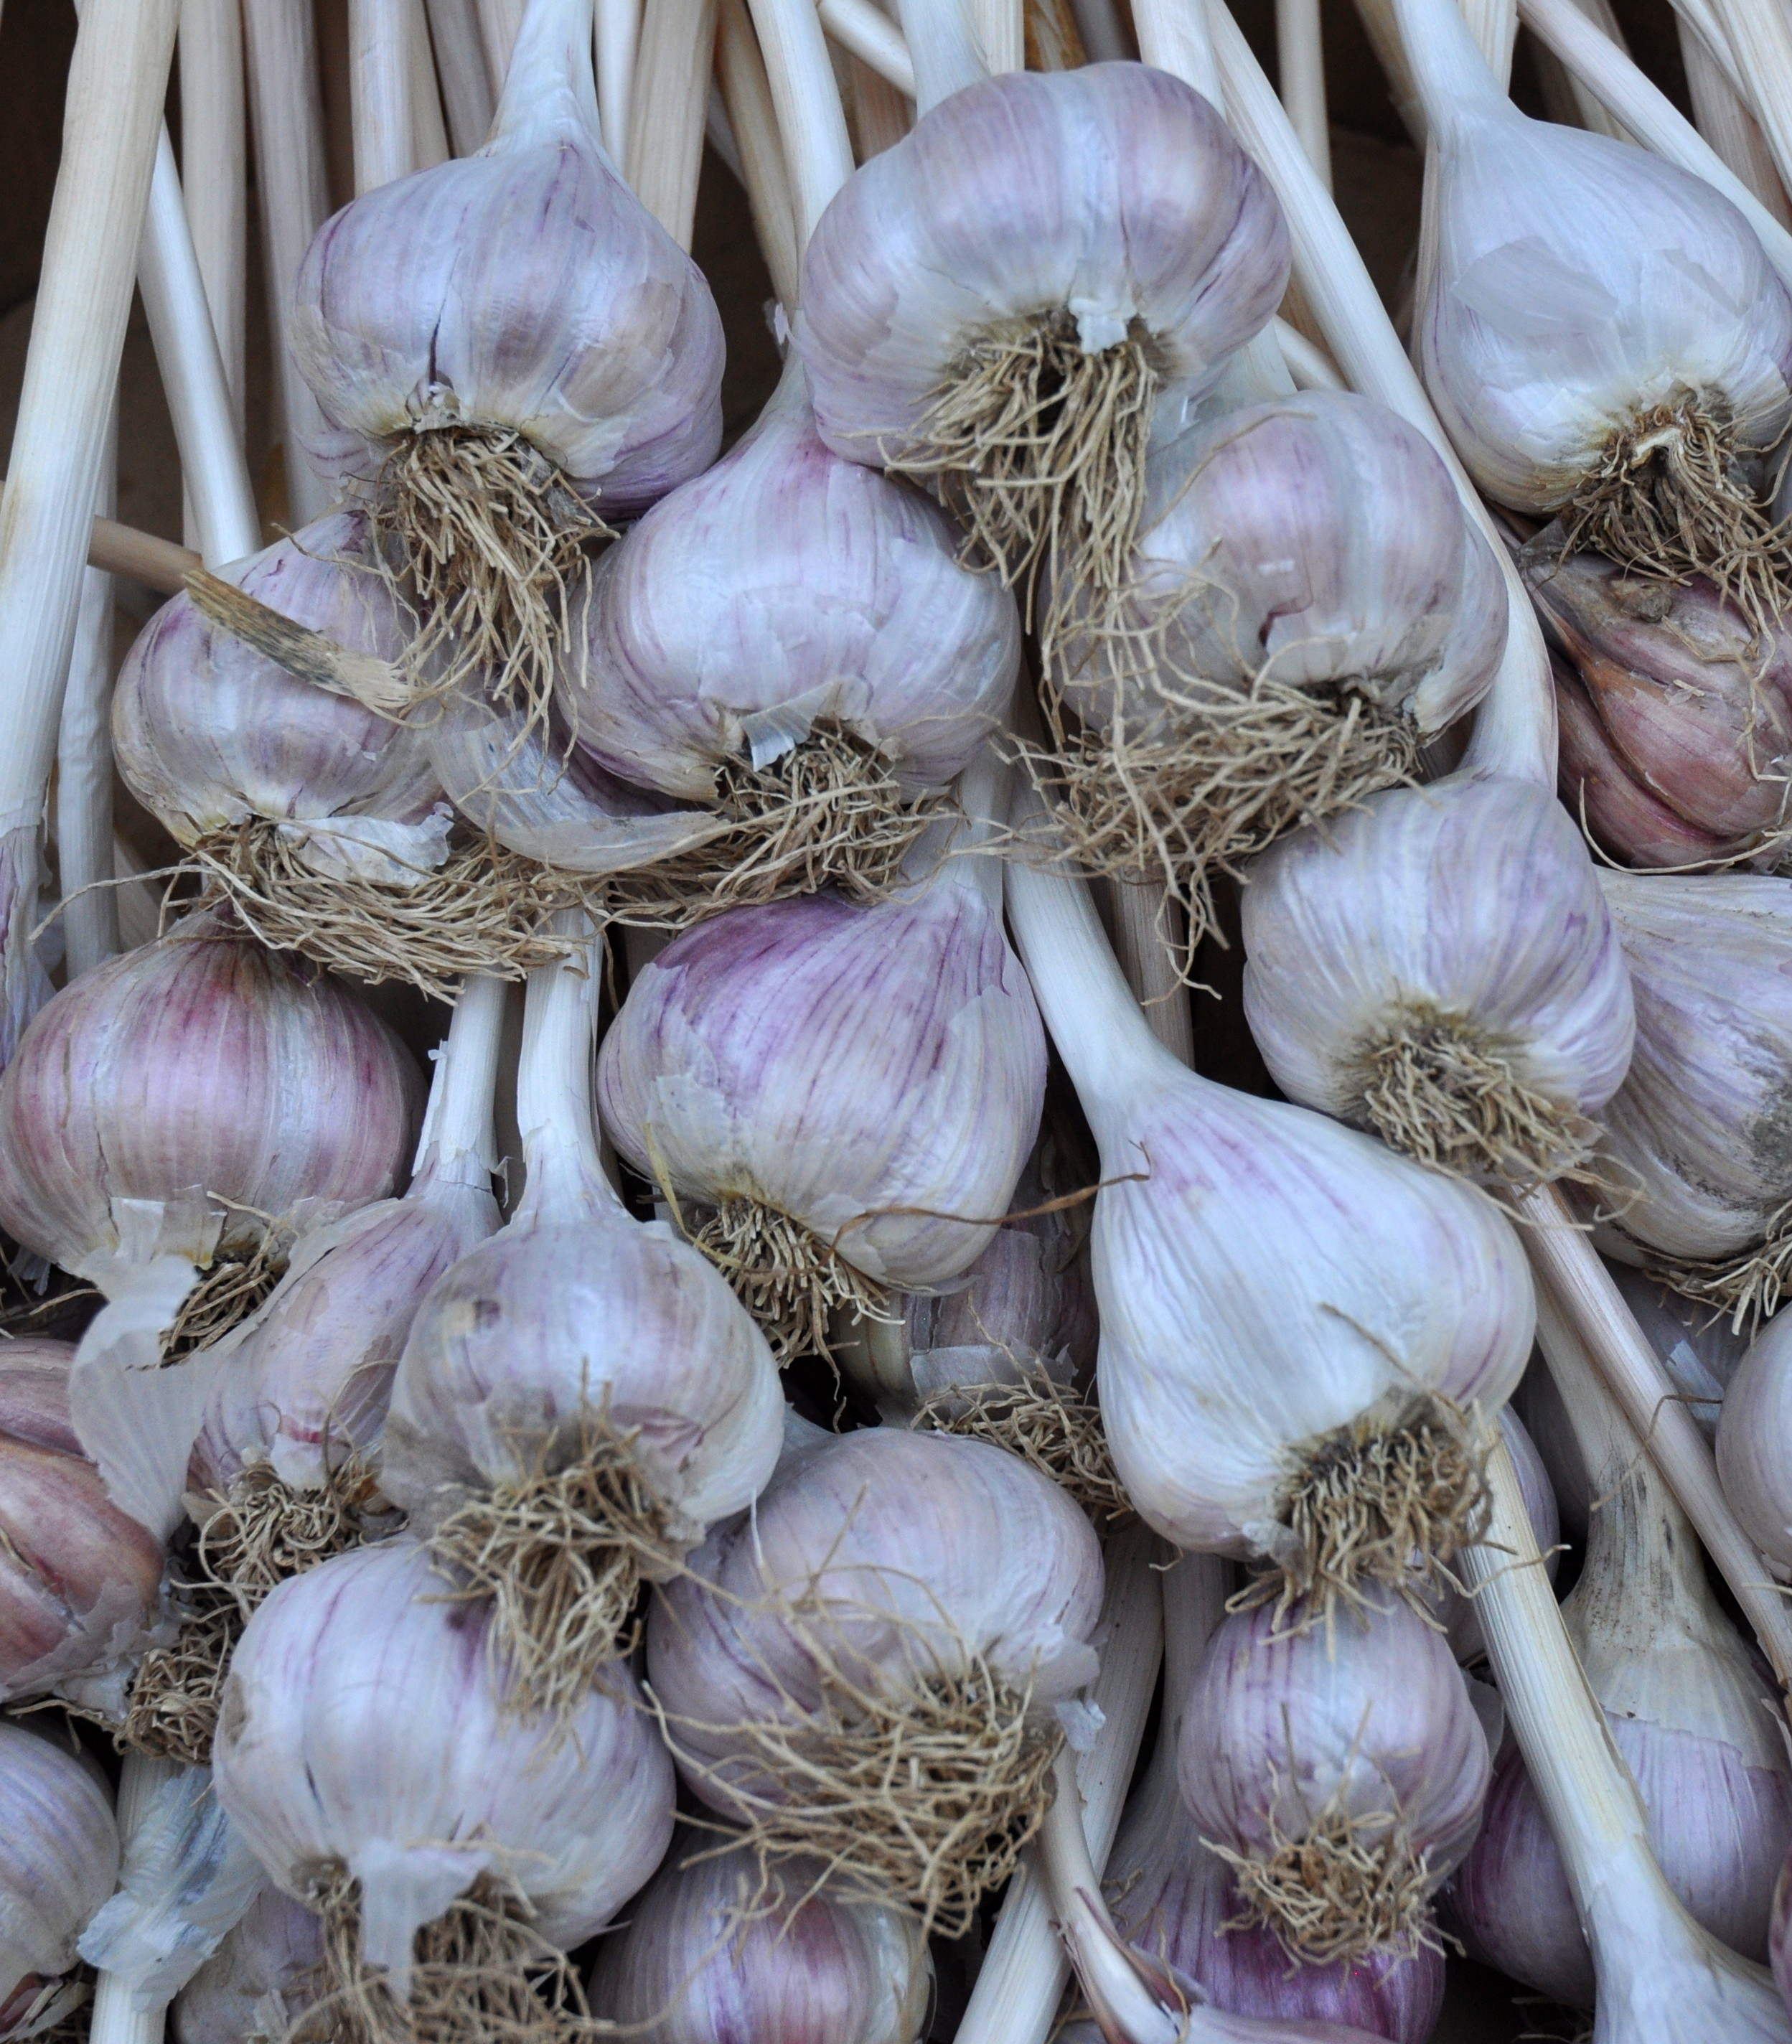 Chesnock red garlic from Jarvis Family Garlic Farm at Ballard Farmers Market. Copyright Zachary D. Lyons.